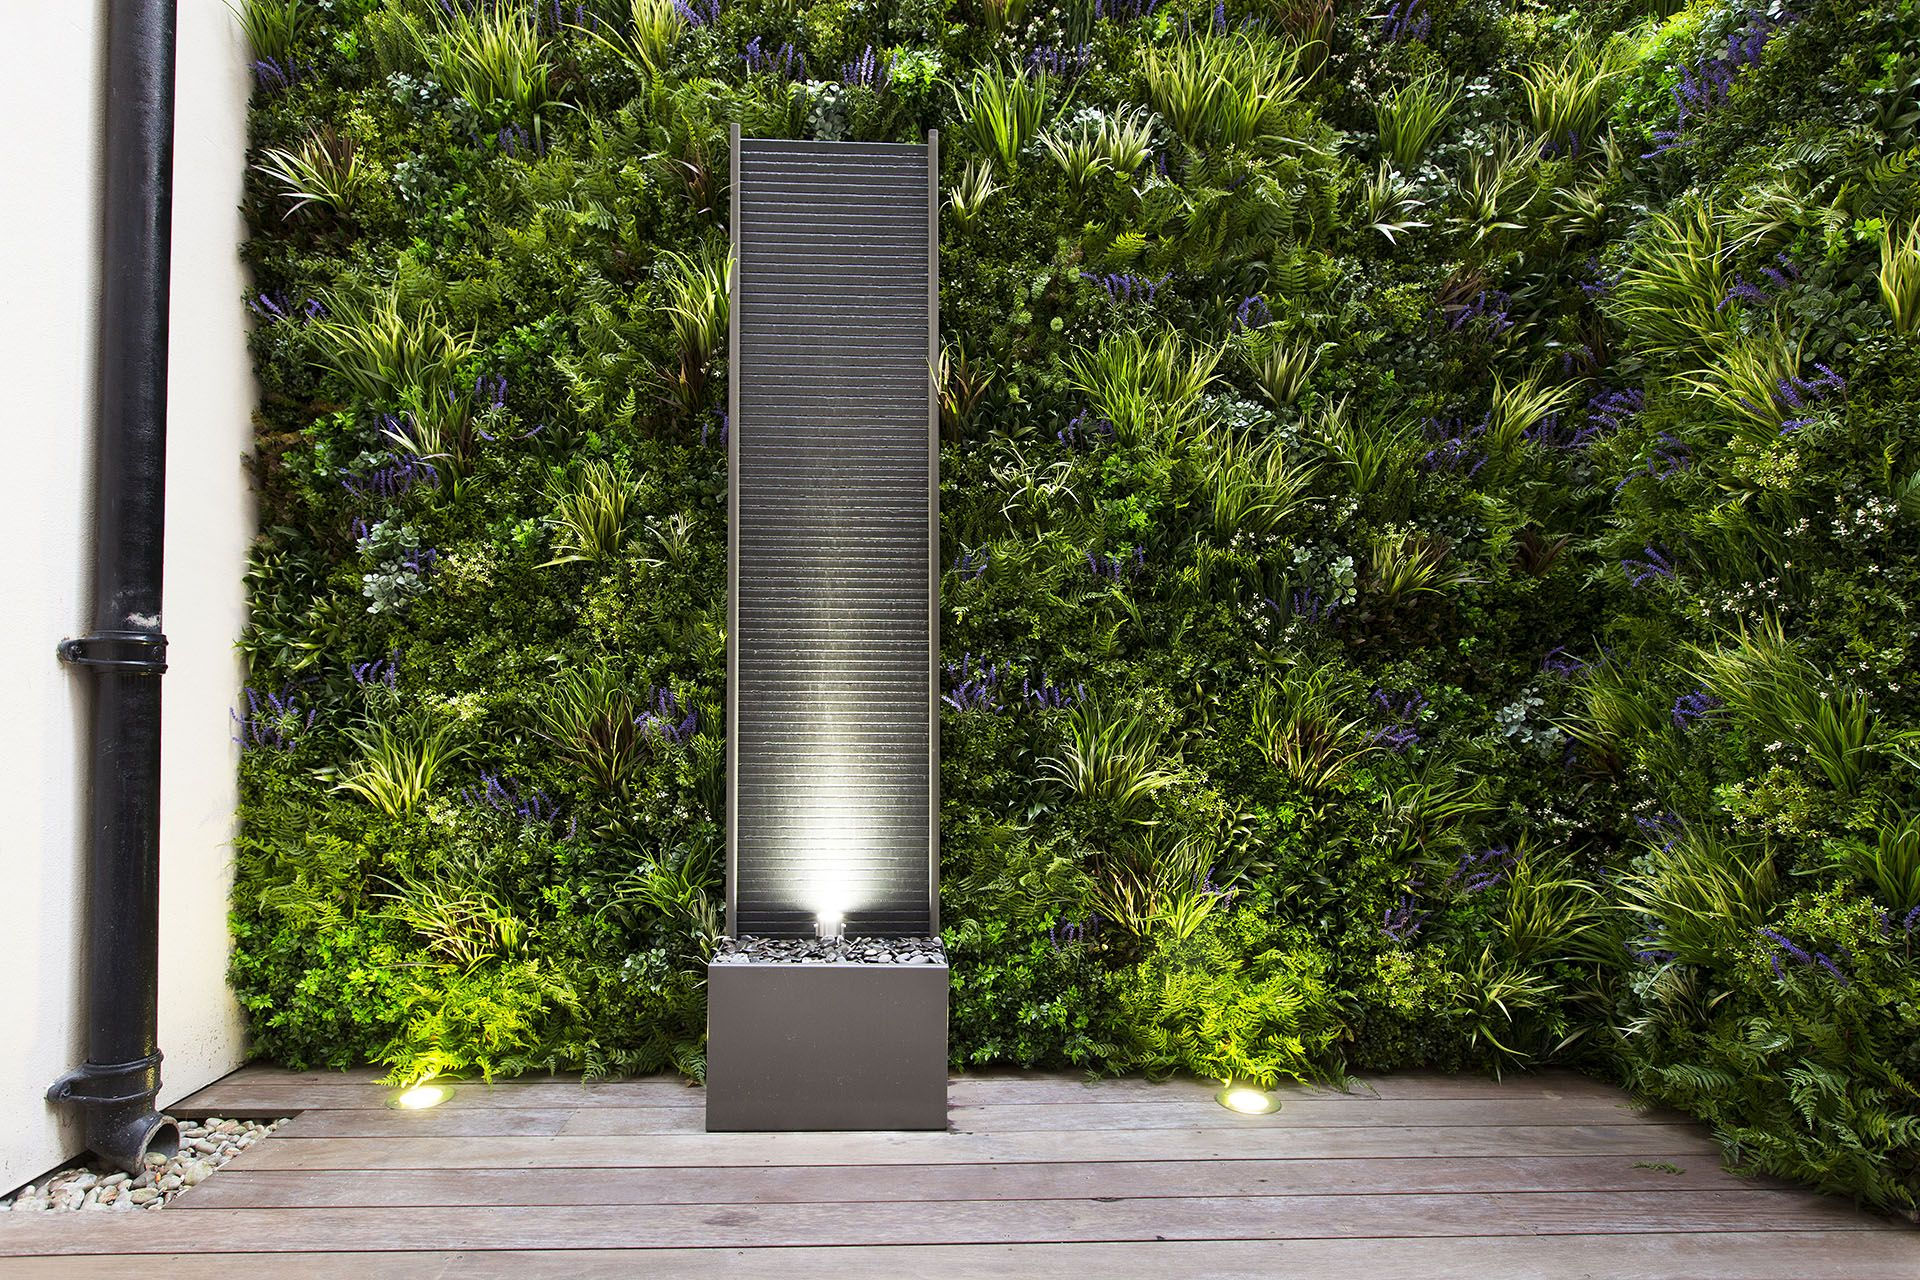 Green Walls, Artificial Green Wall, Garden Design, Garden Photography, Garden,